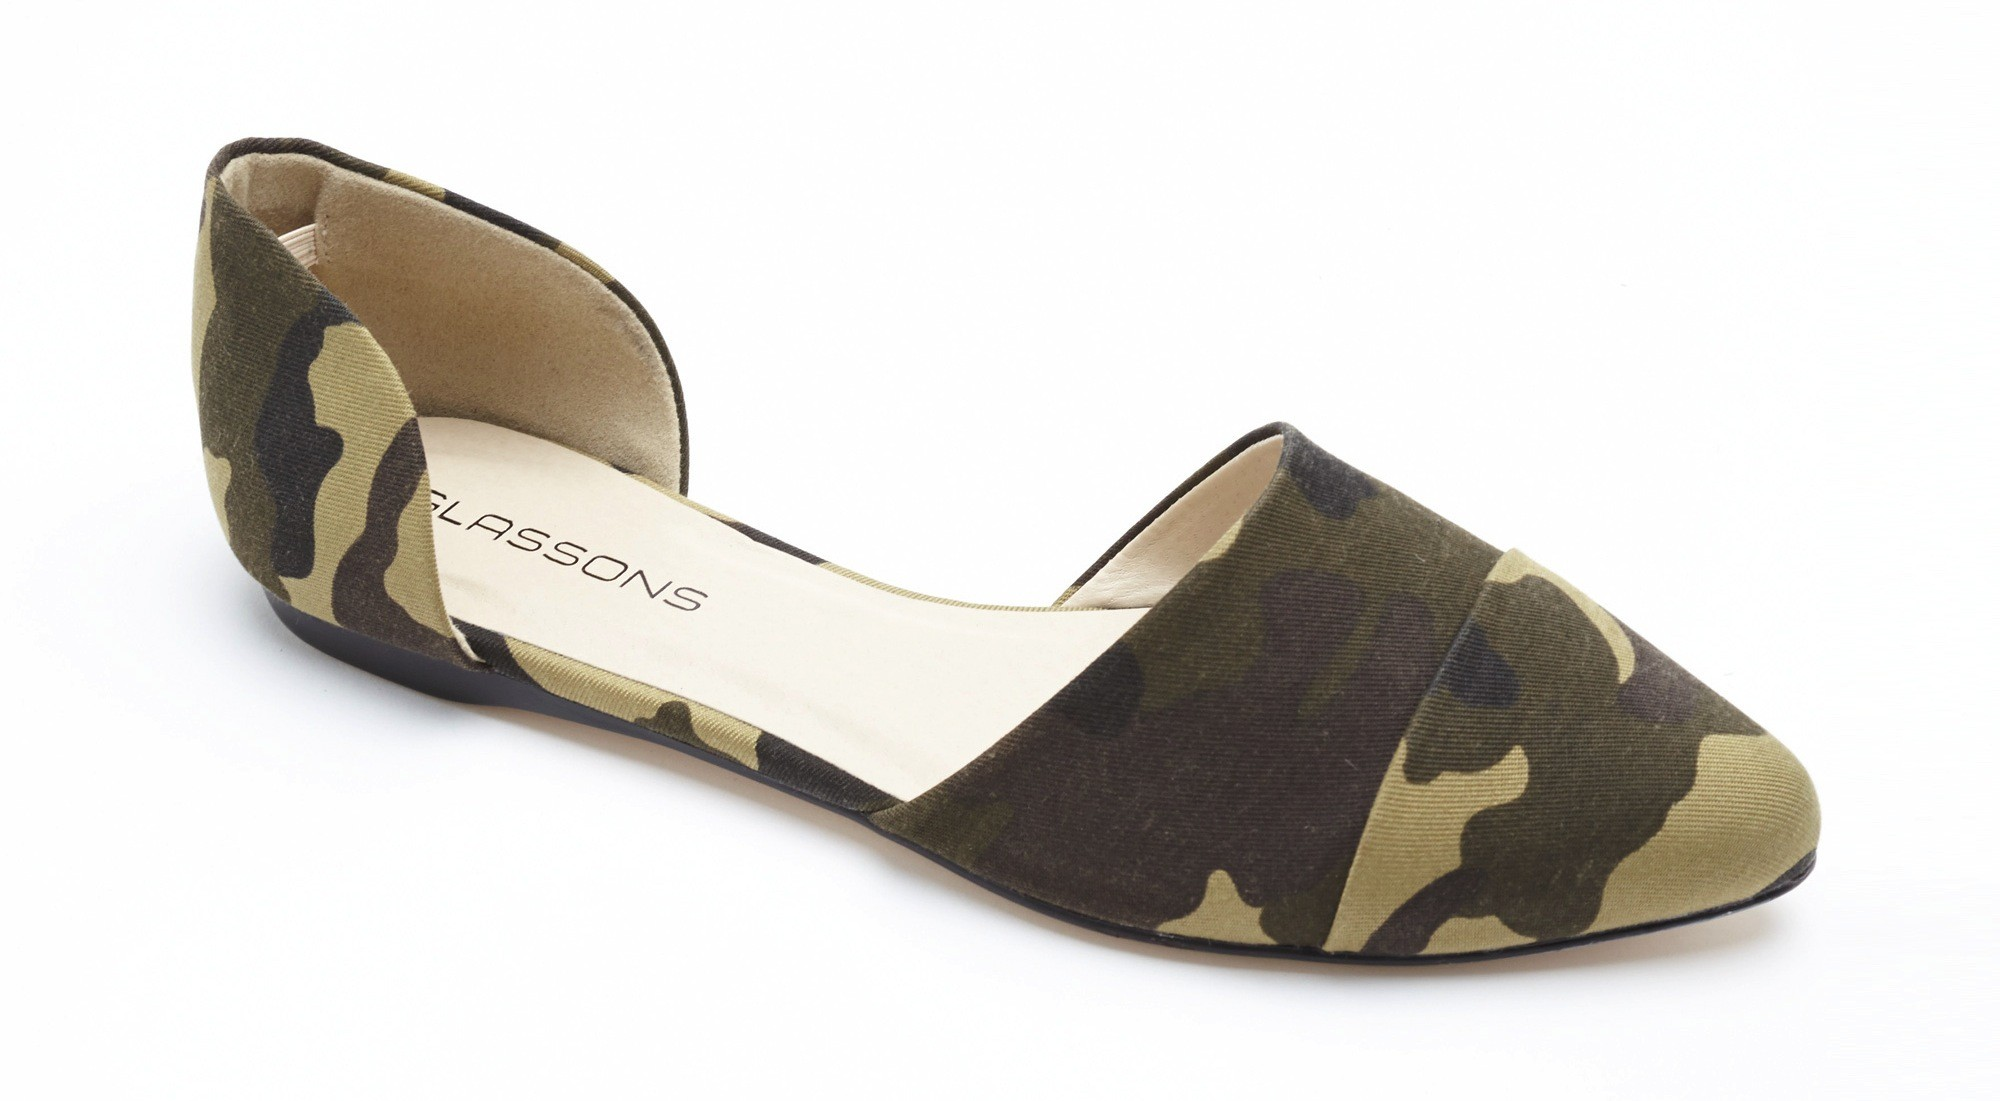 Glassons Pointed Toe Flats in Camo $34.99